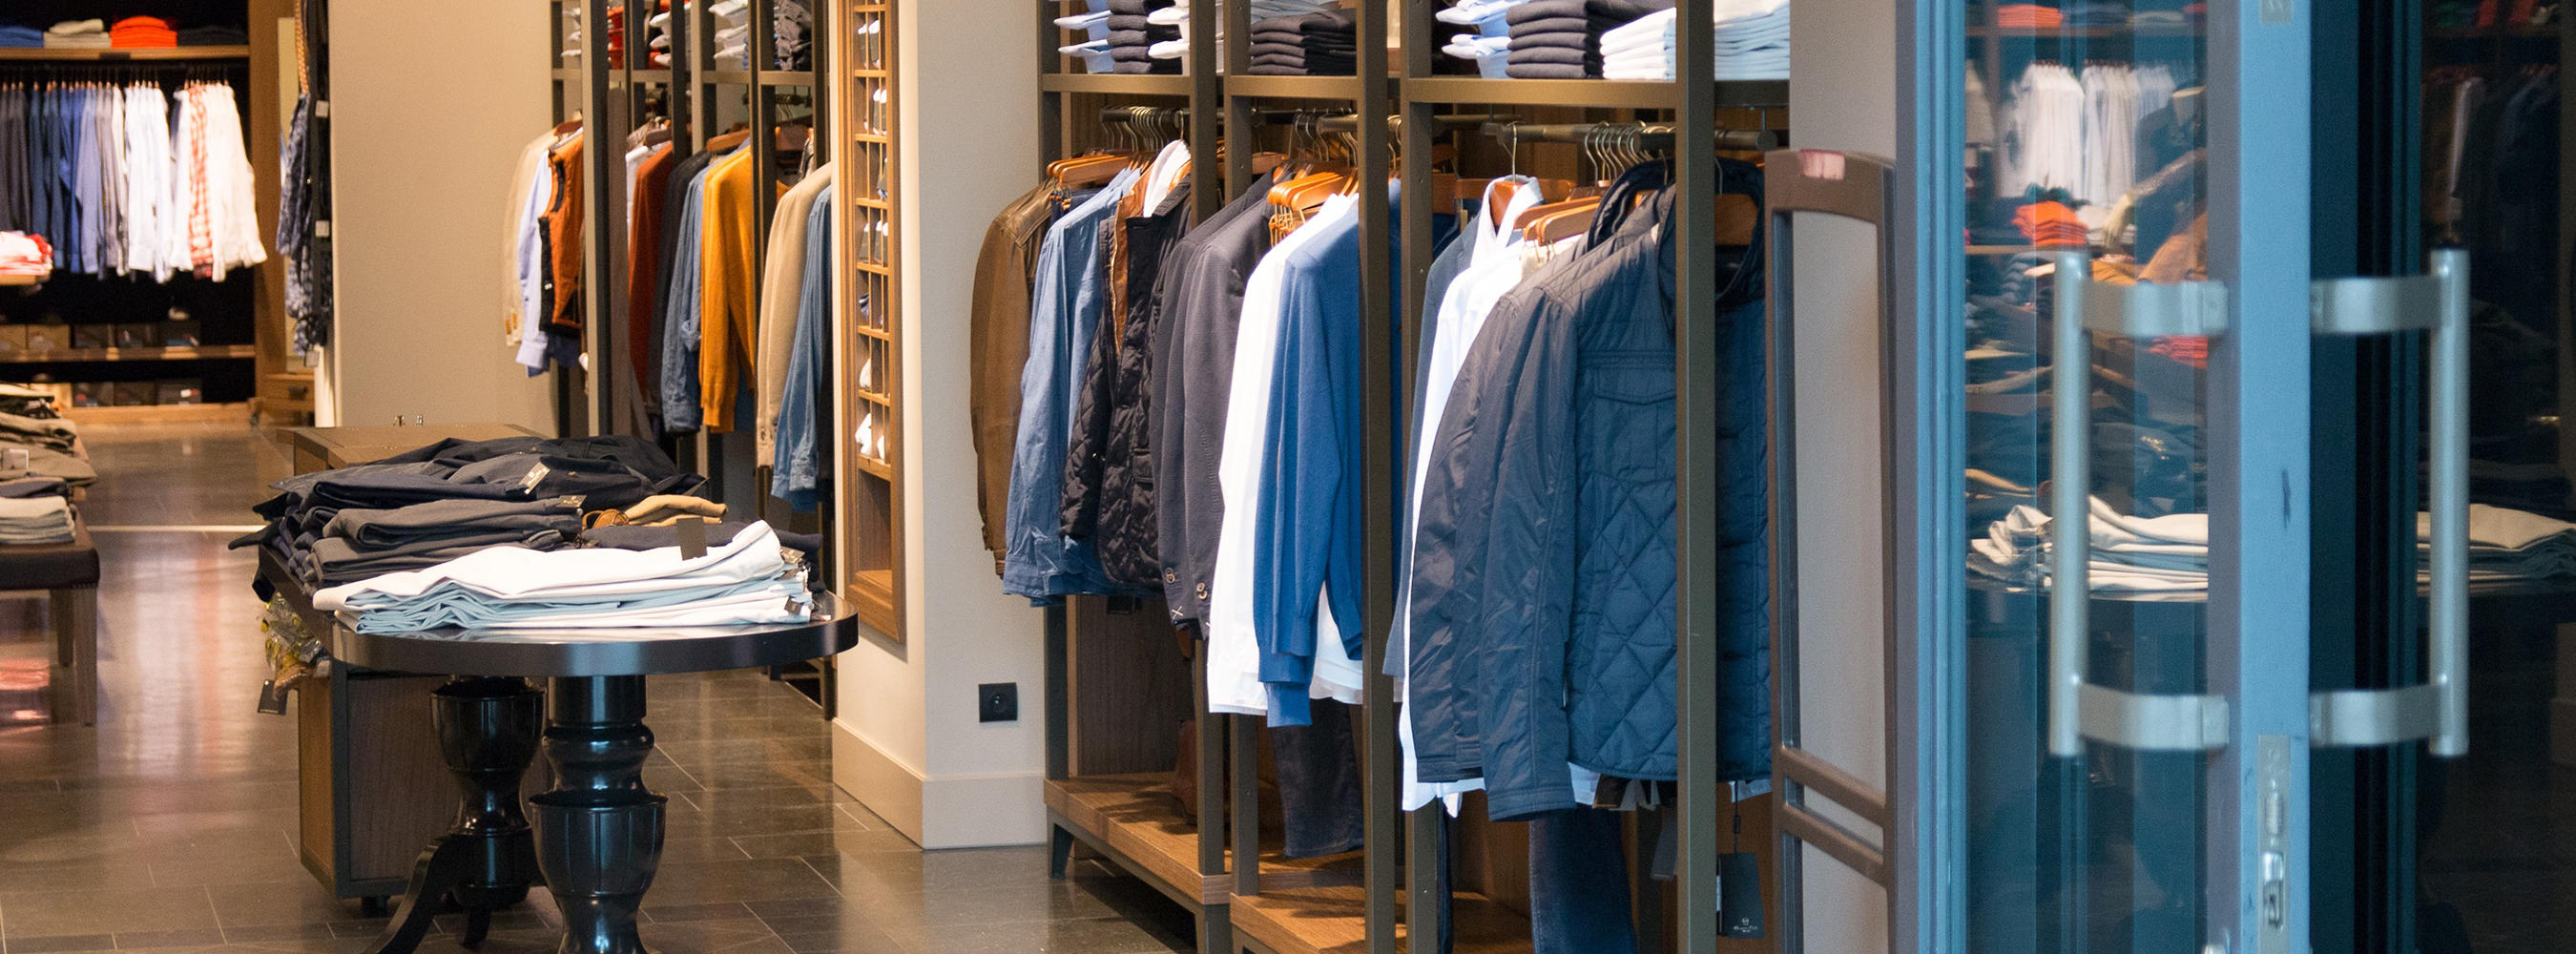 Bringing Your Store to Light: 10 Dos and Don'ts of Retail